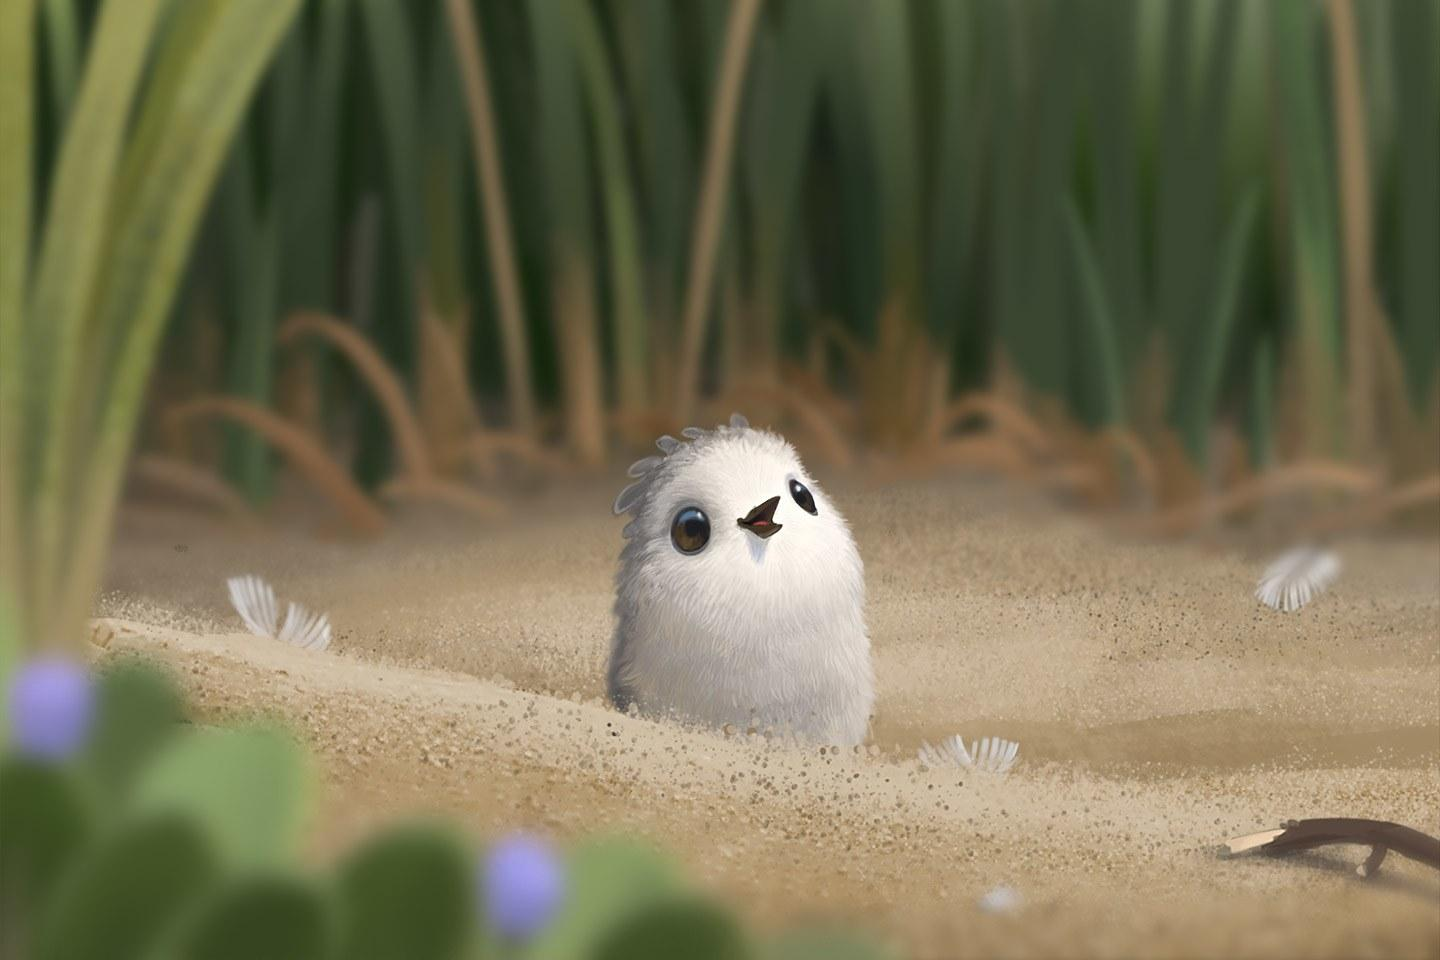 Finding Dory: Watch Pixar's adorable short film Piper